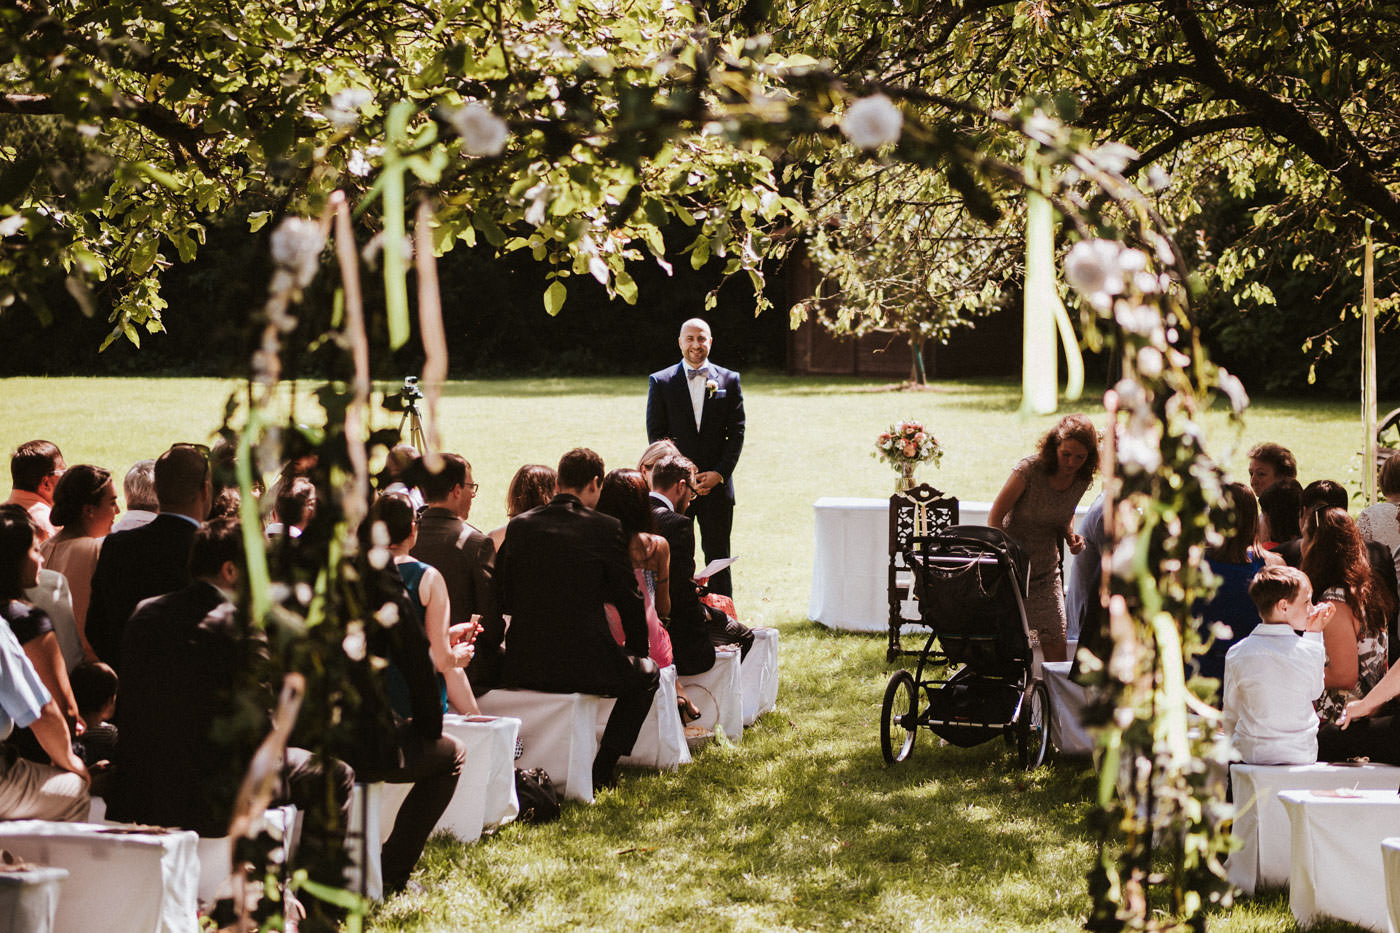 Groom and wedding guests at the outdoor ceremony under a tree